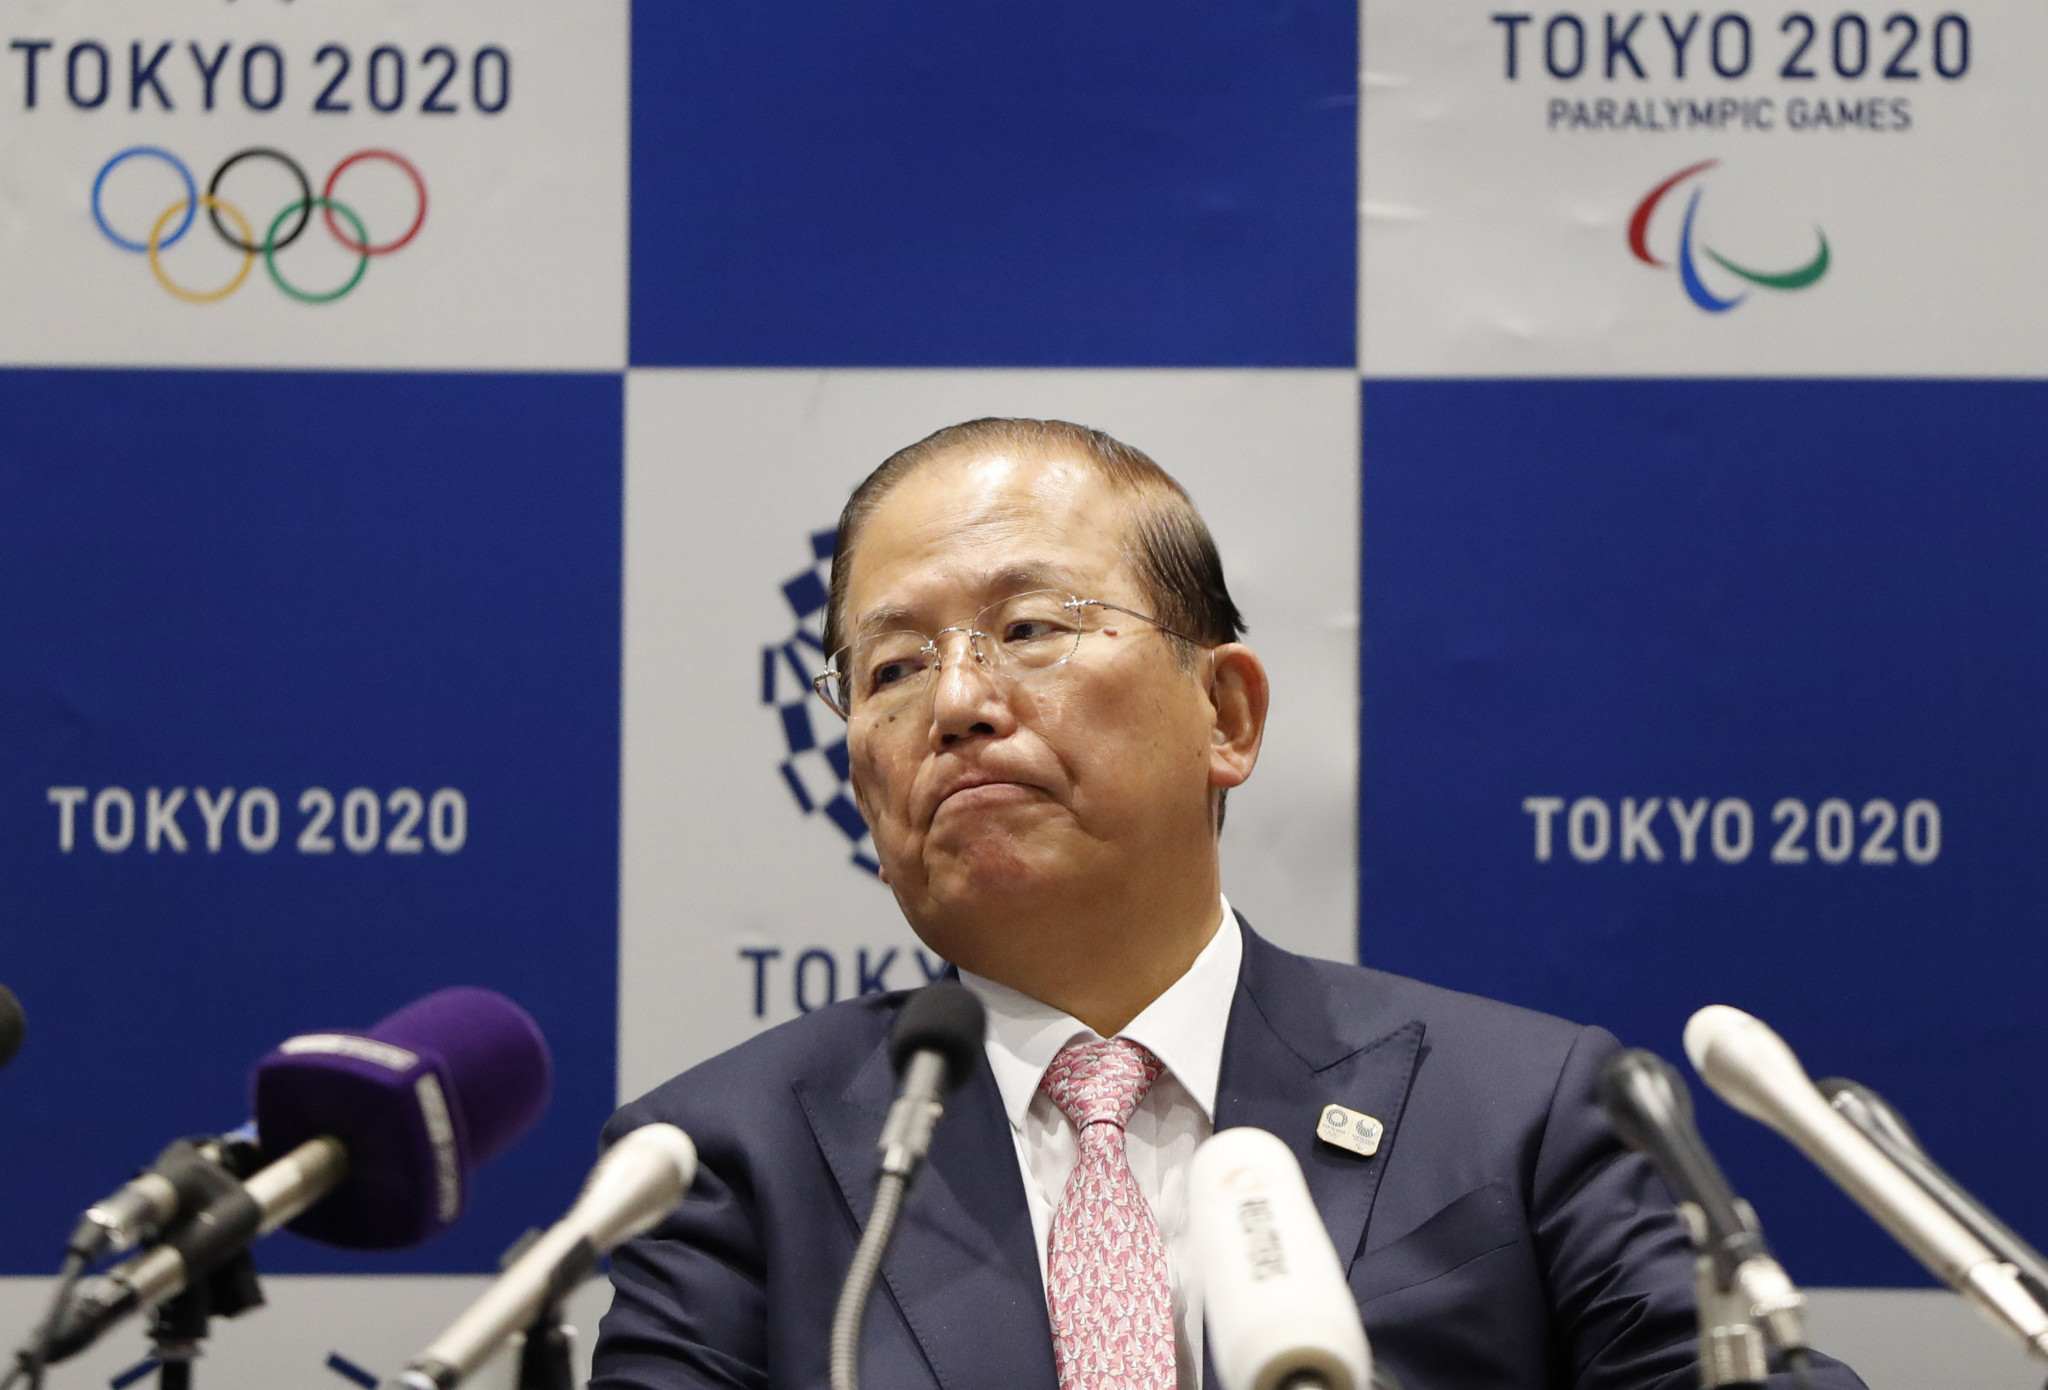 Tokyo 2020 have confirmed the rescheduled dates of the Olympics and Paralympics following last week's postponement ©Getty Images